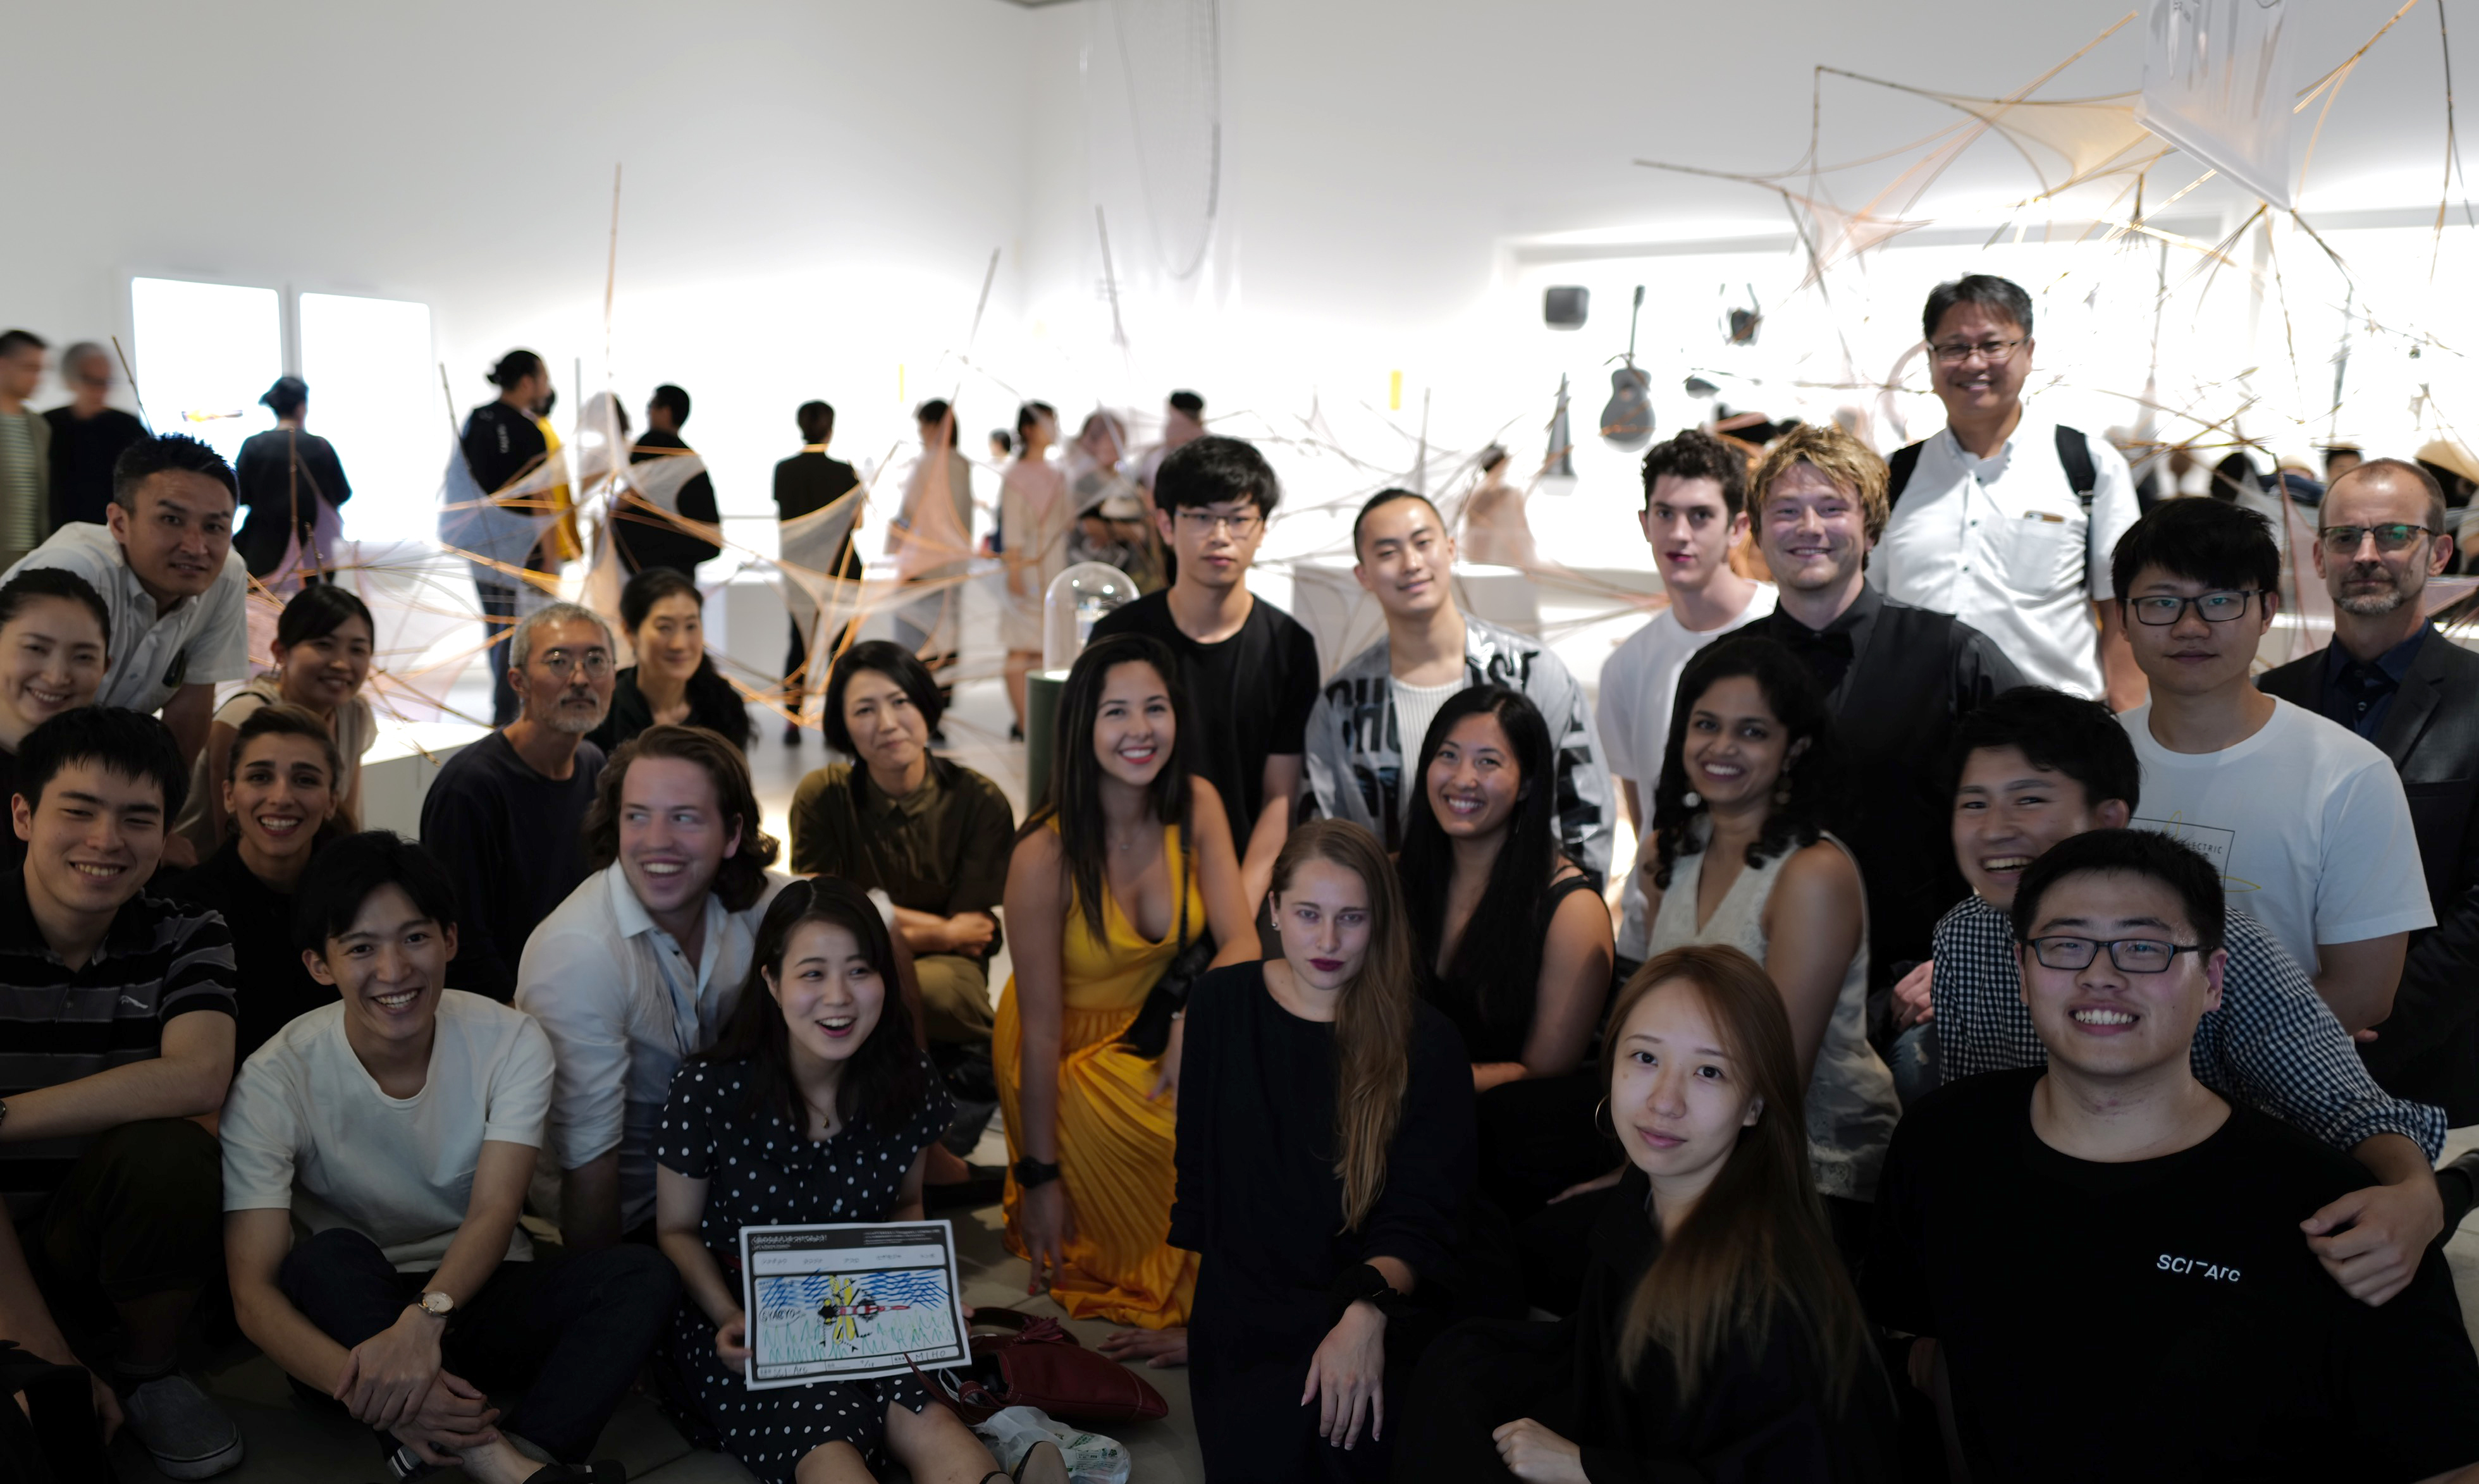 student group photo at exhibition opening